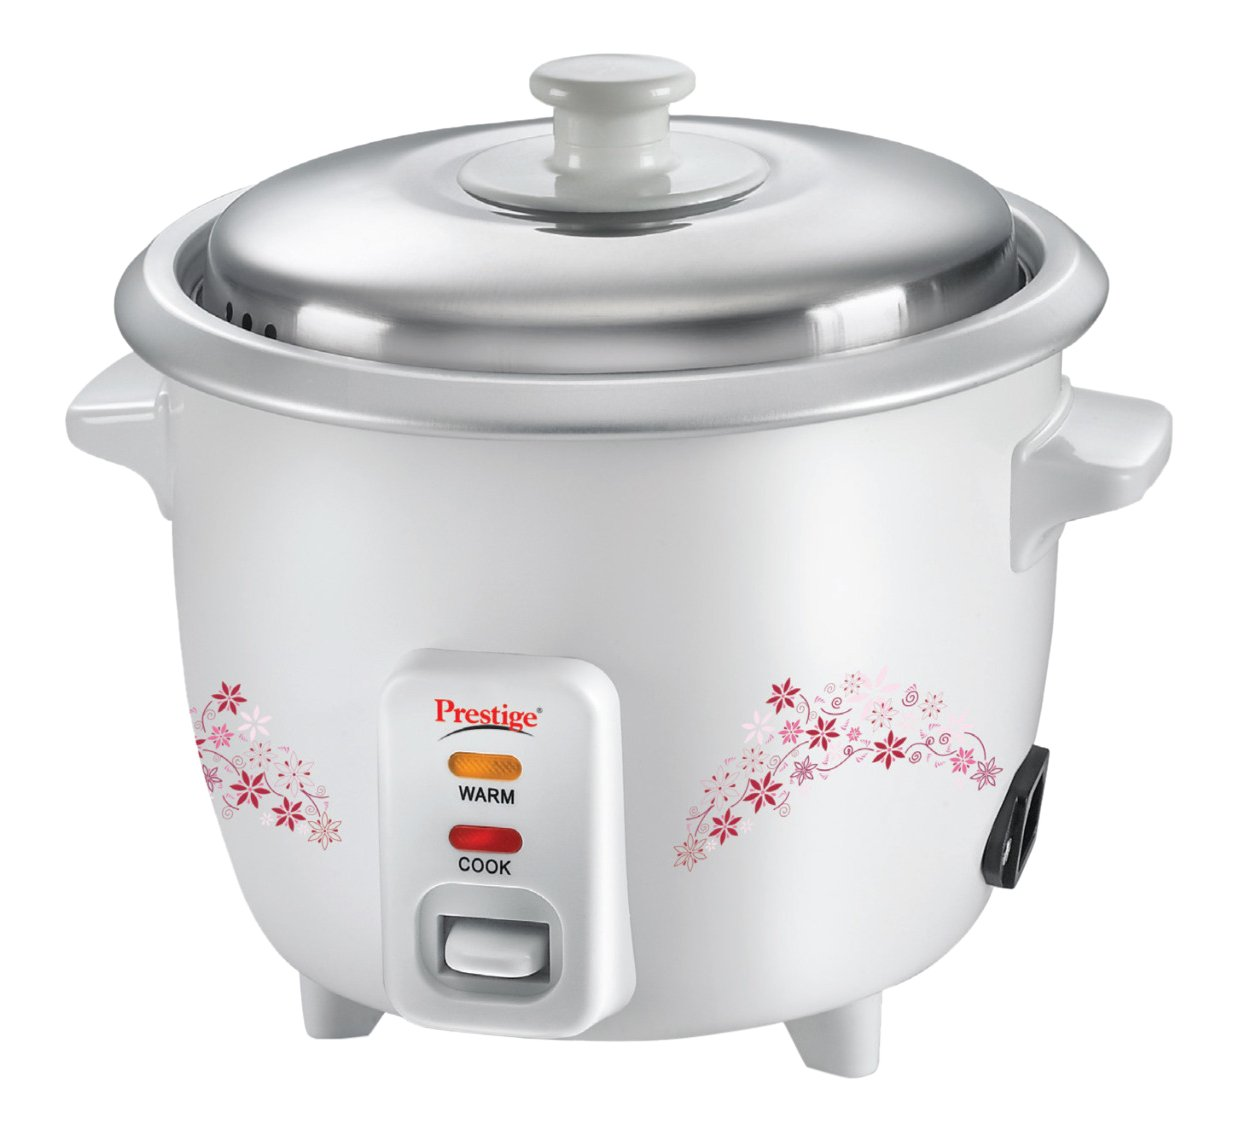 Amazon : Prestige Delight PRWO 1.0 1-Litre Electric Rice Cooker (White) @ Rs.999/- [Lightning Deal]